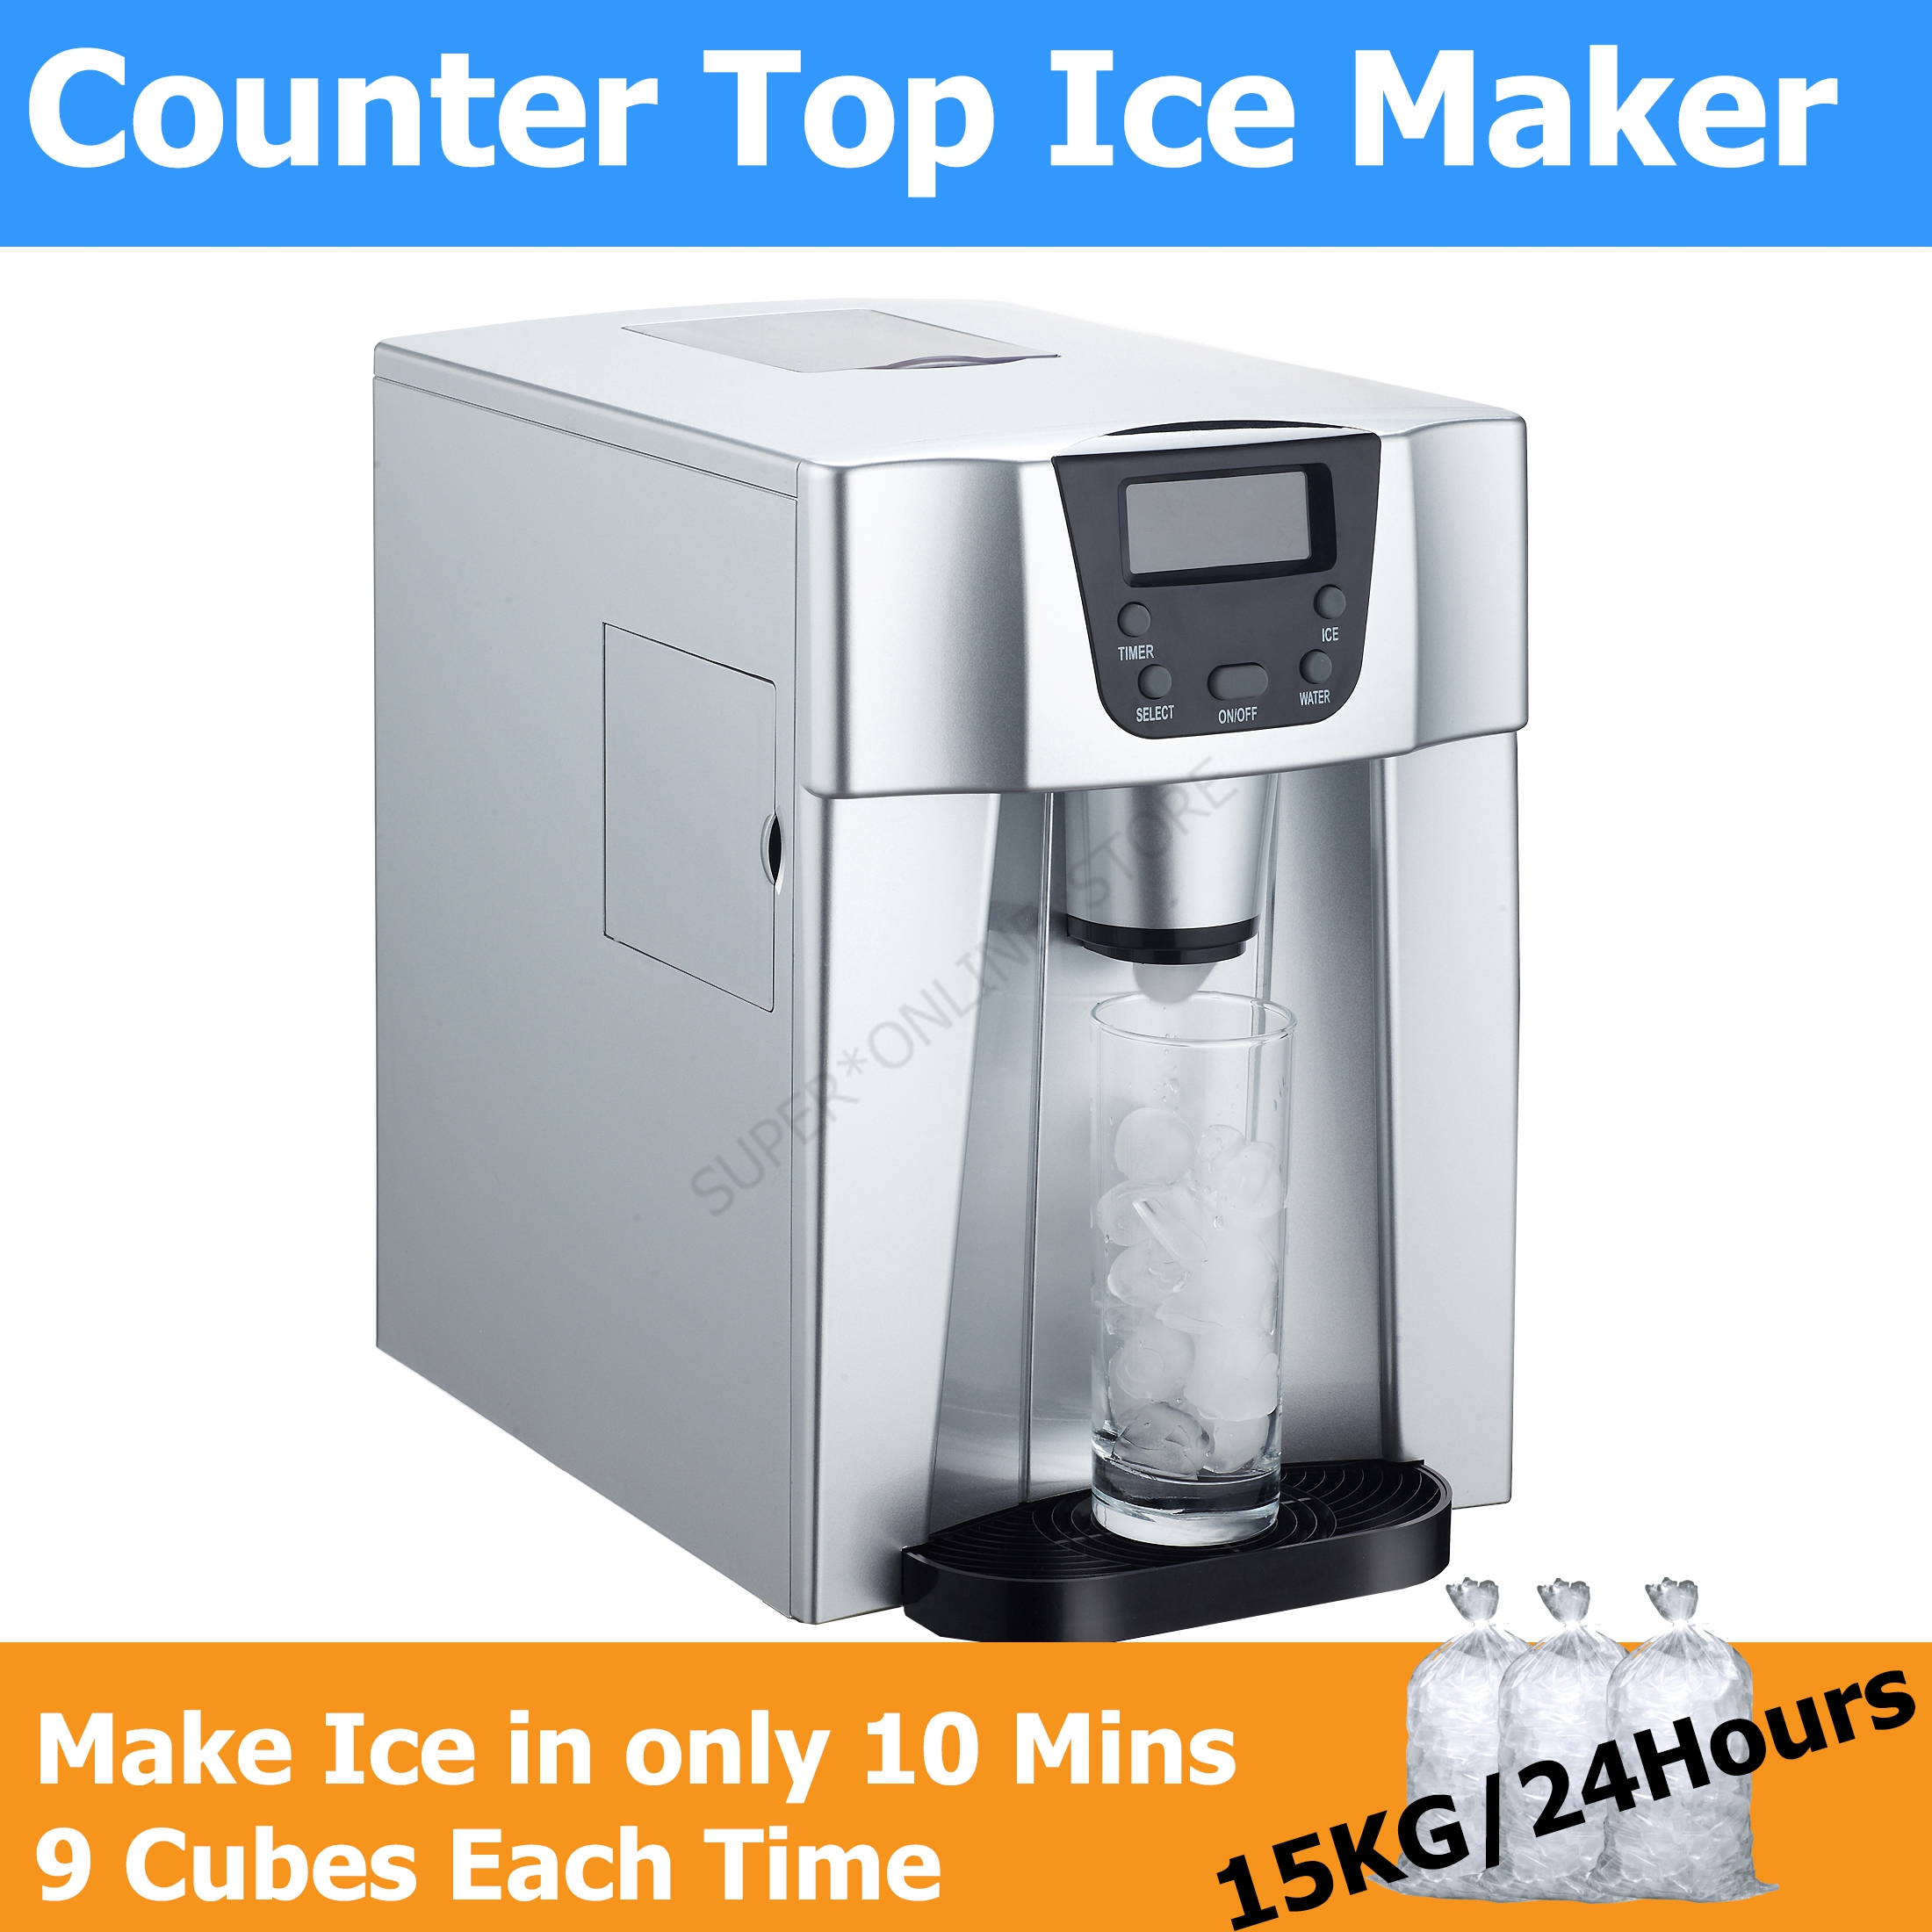 elegant maker mercial countertop of best dispenser icemaker countertops and counter top ice newair makers